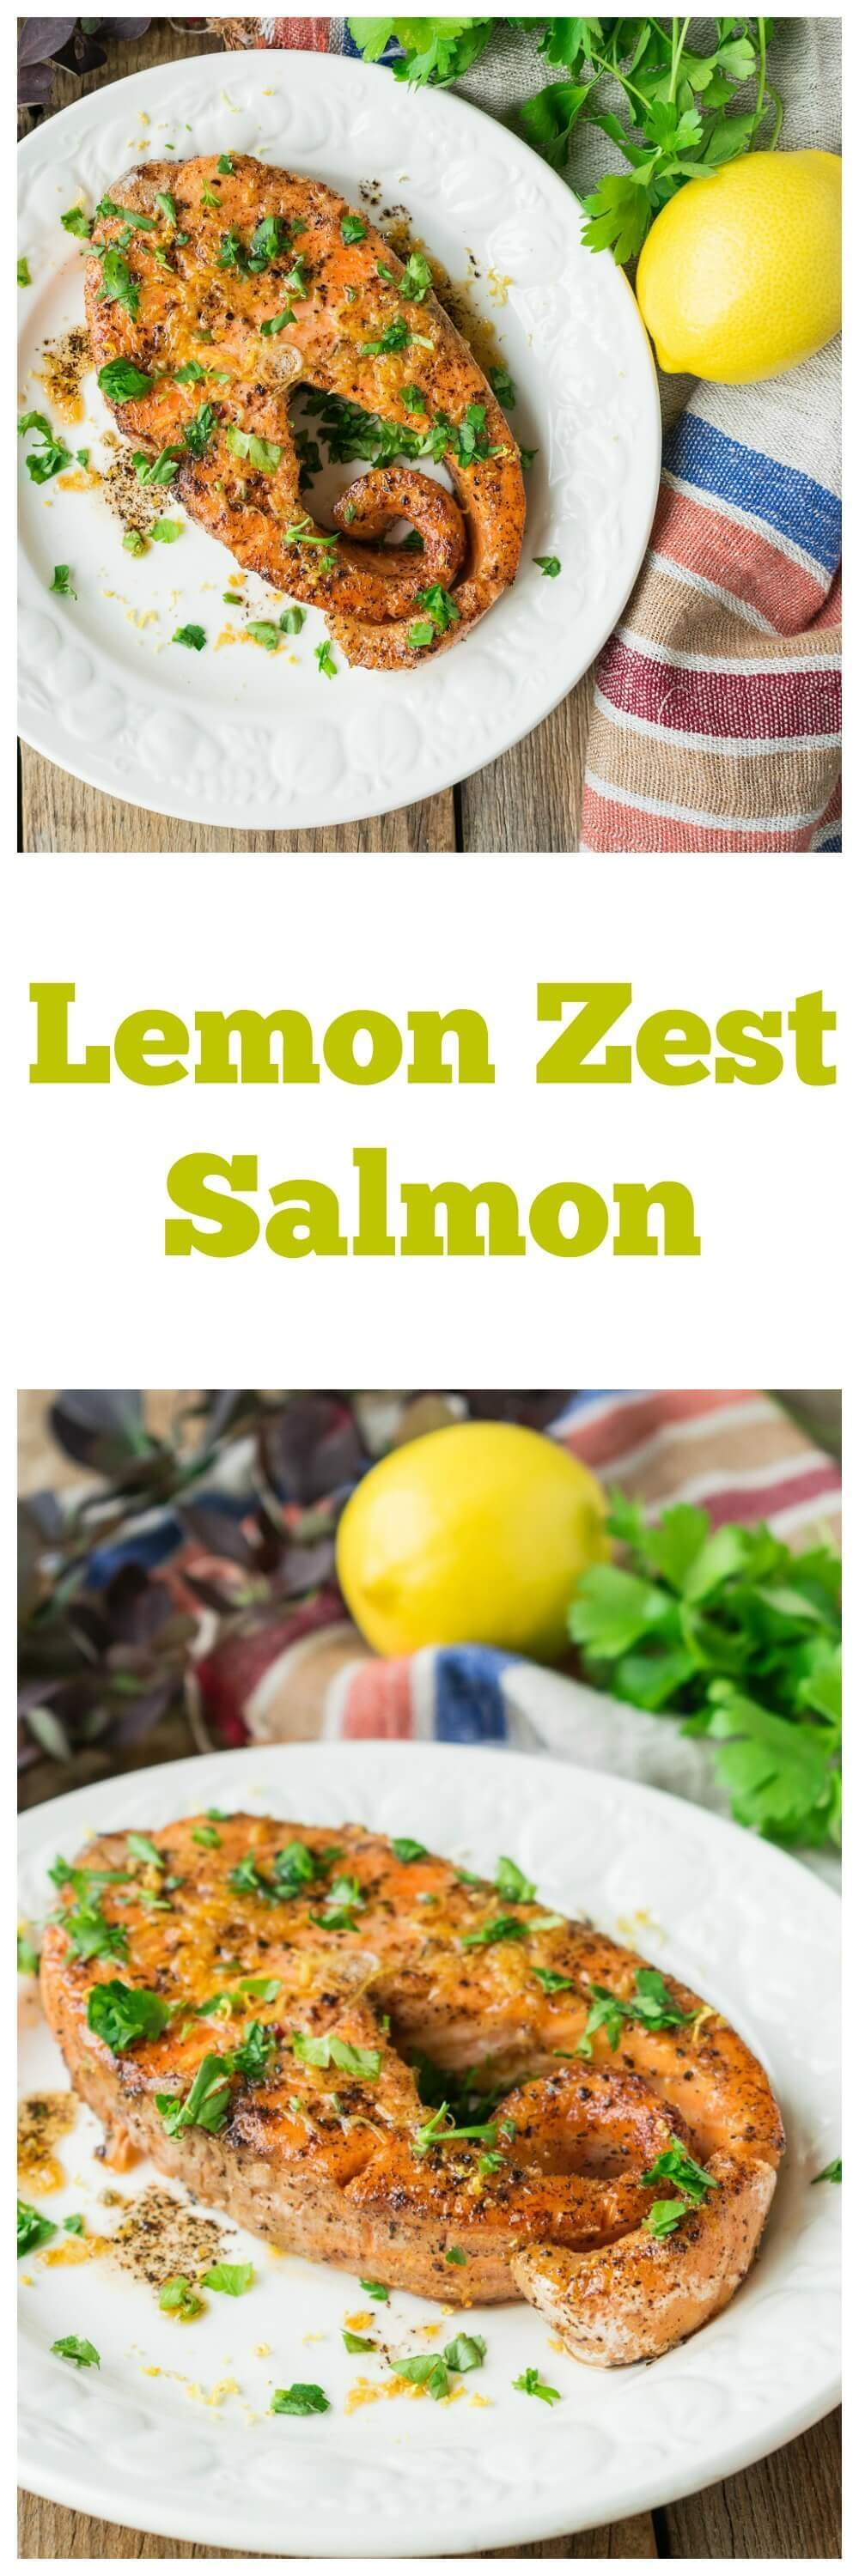 Lemon Zest Salmon